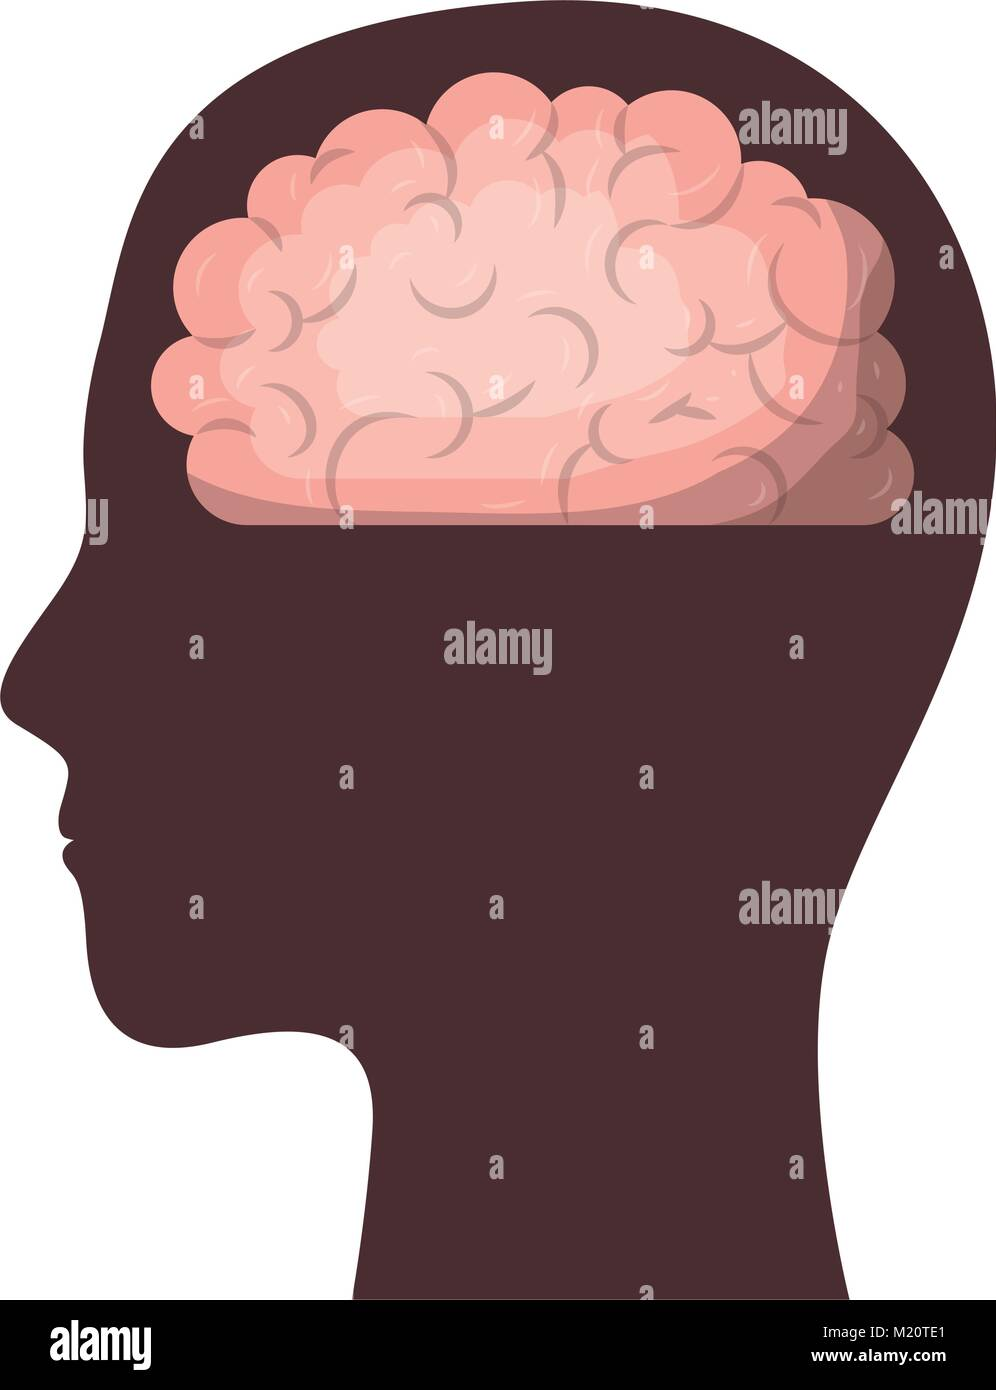 medium resolution of human face brown silhouette with brain inside in colorful silhouette